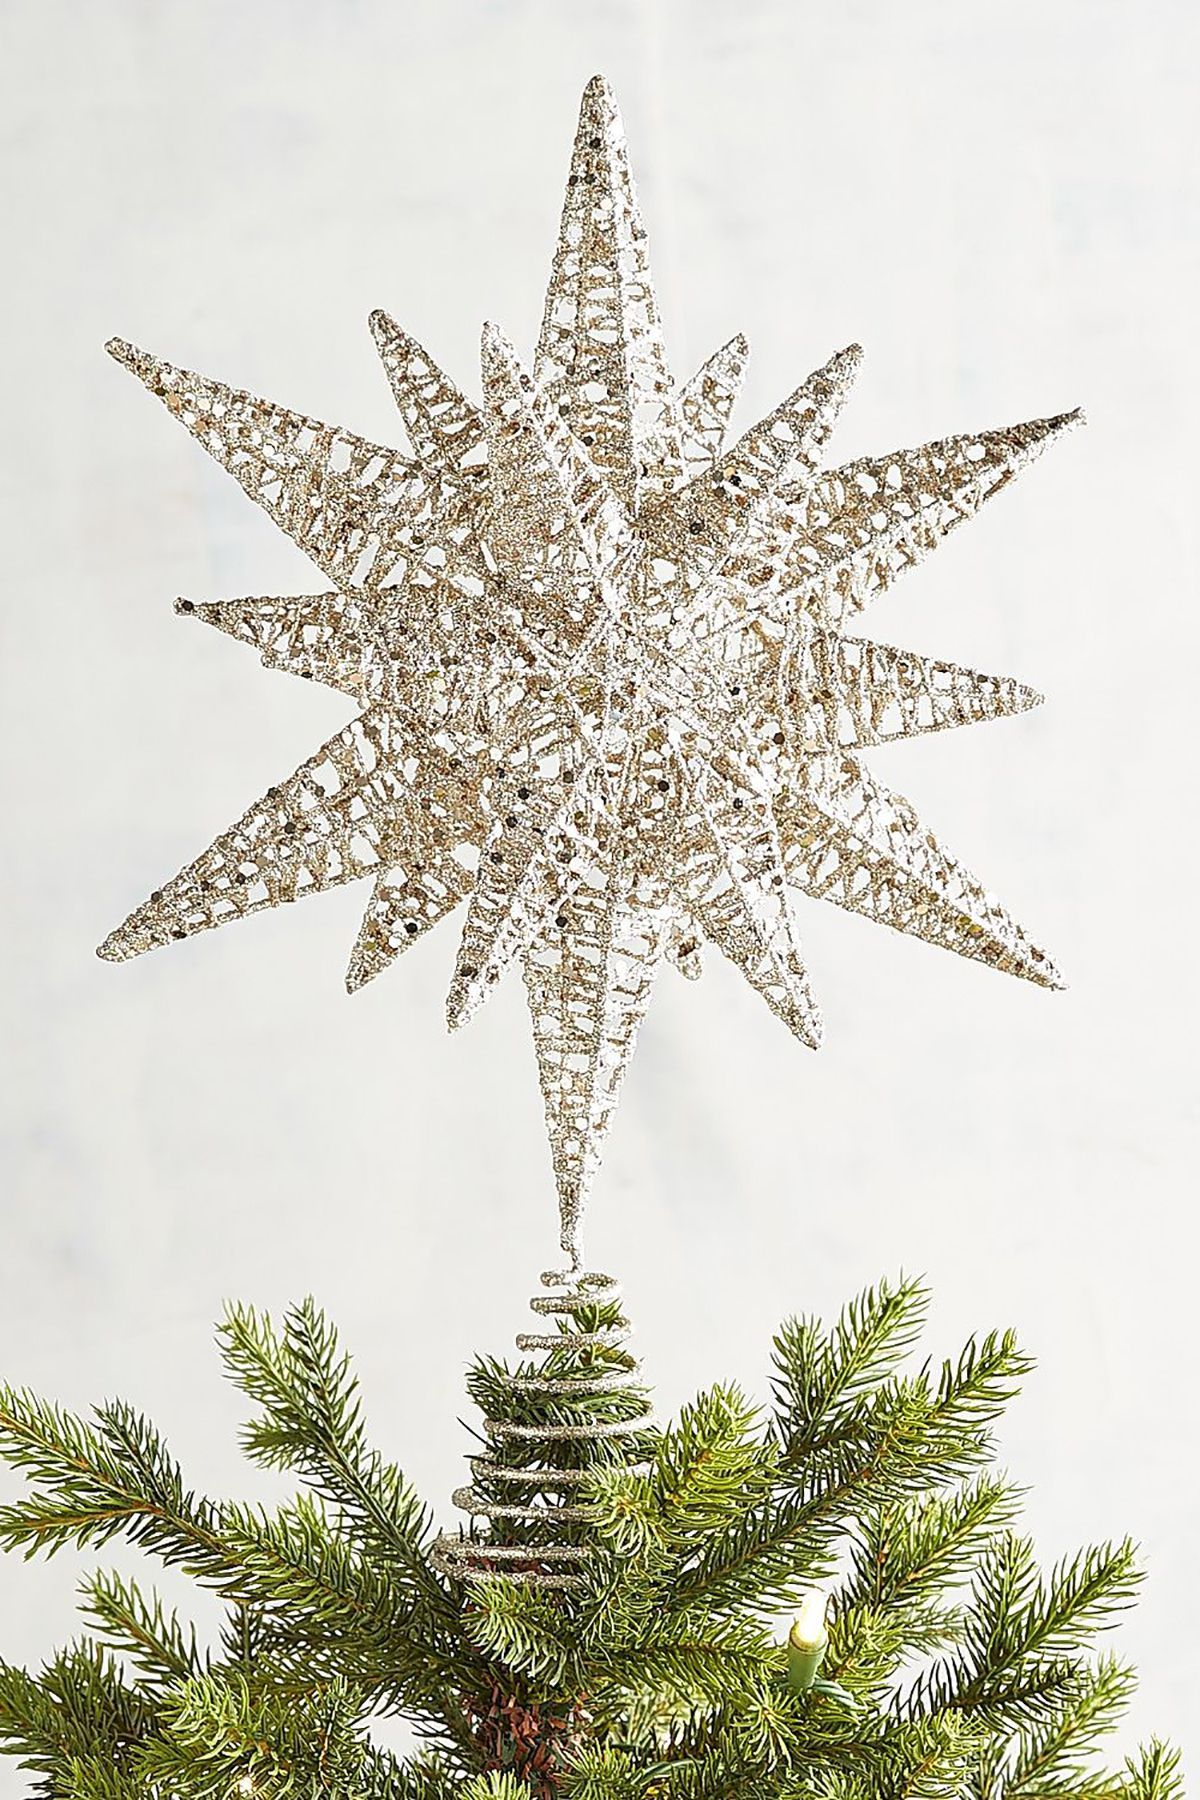 18 Unique Christmas Tree Topper Ideas - Fun Stars, Angels & More to ...